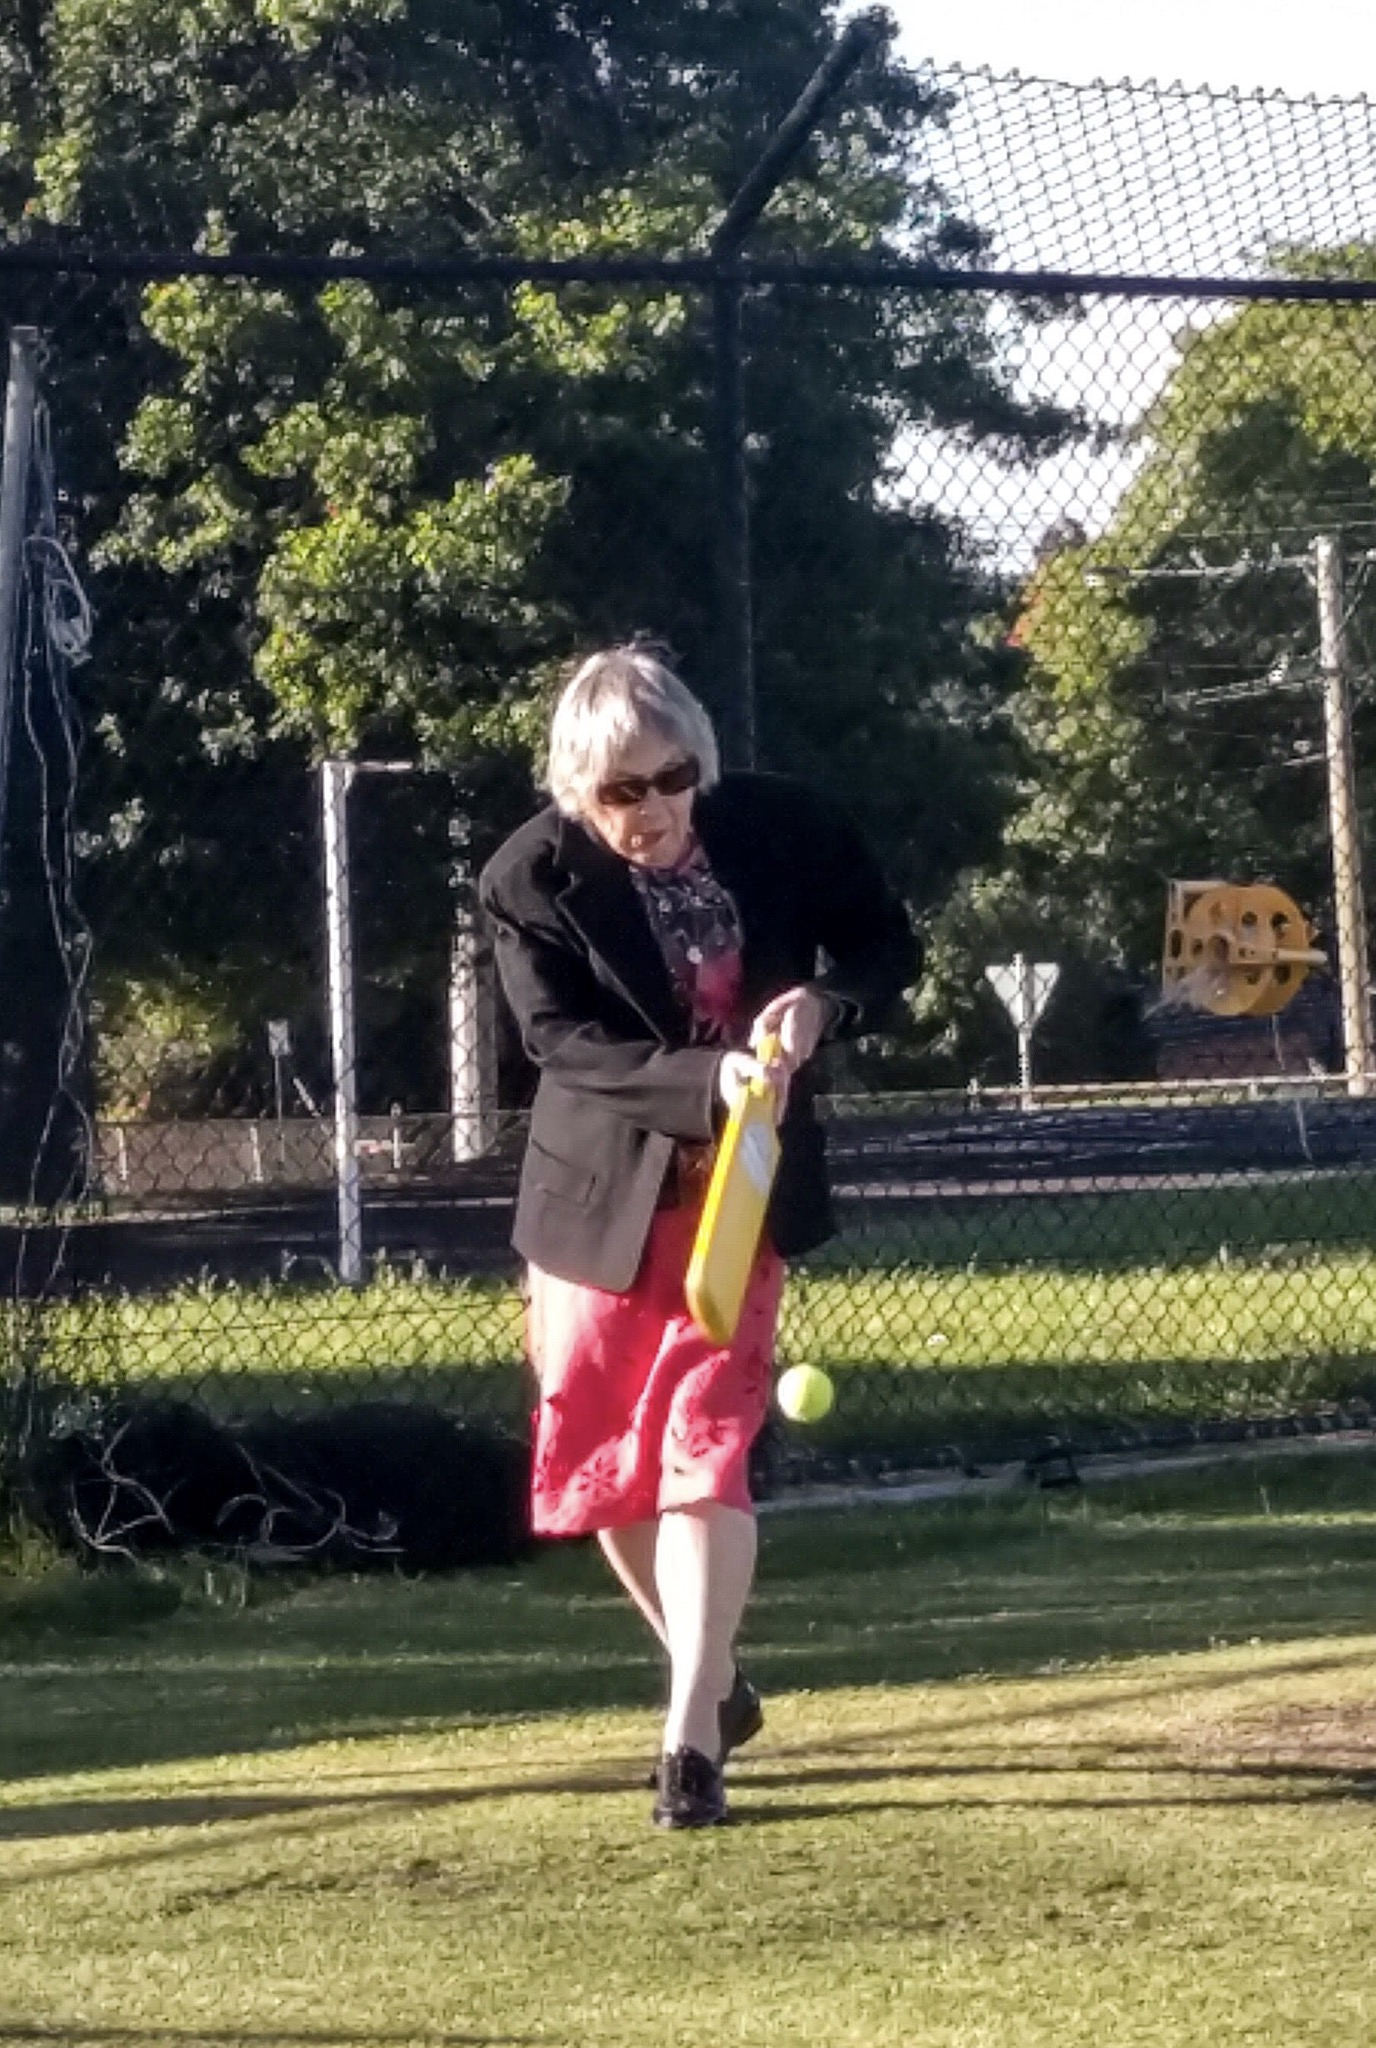 The post-Christmas lunch cricket match gets pretty serious in our family. Here mum clips one off the legs for a couple of runs